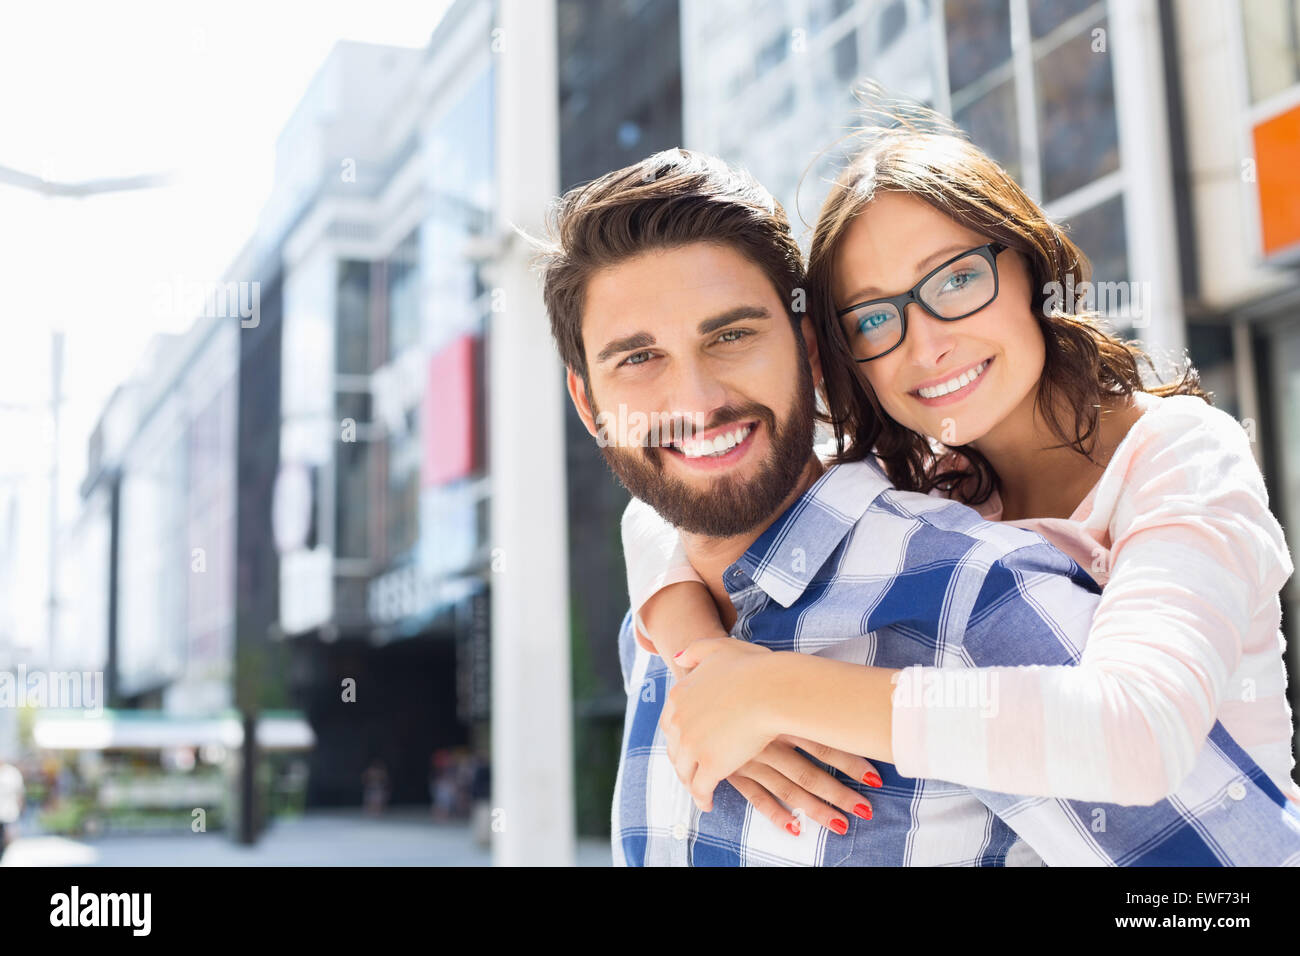 Portrait of happy man giving piggyback ride to woman in city Stock Photo